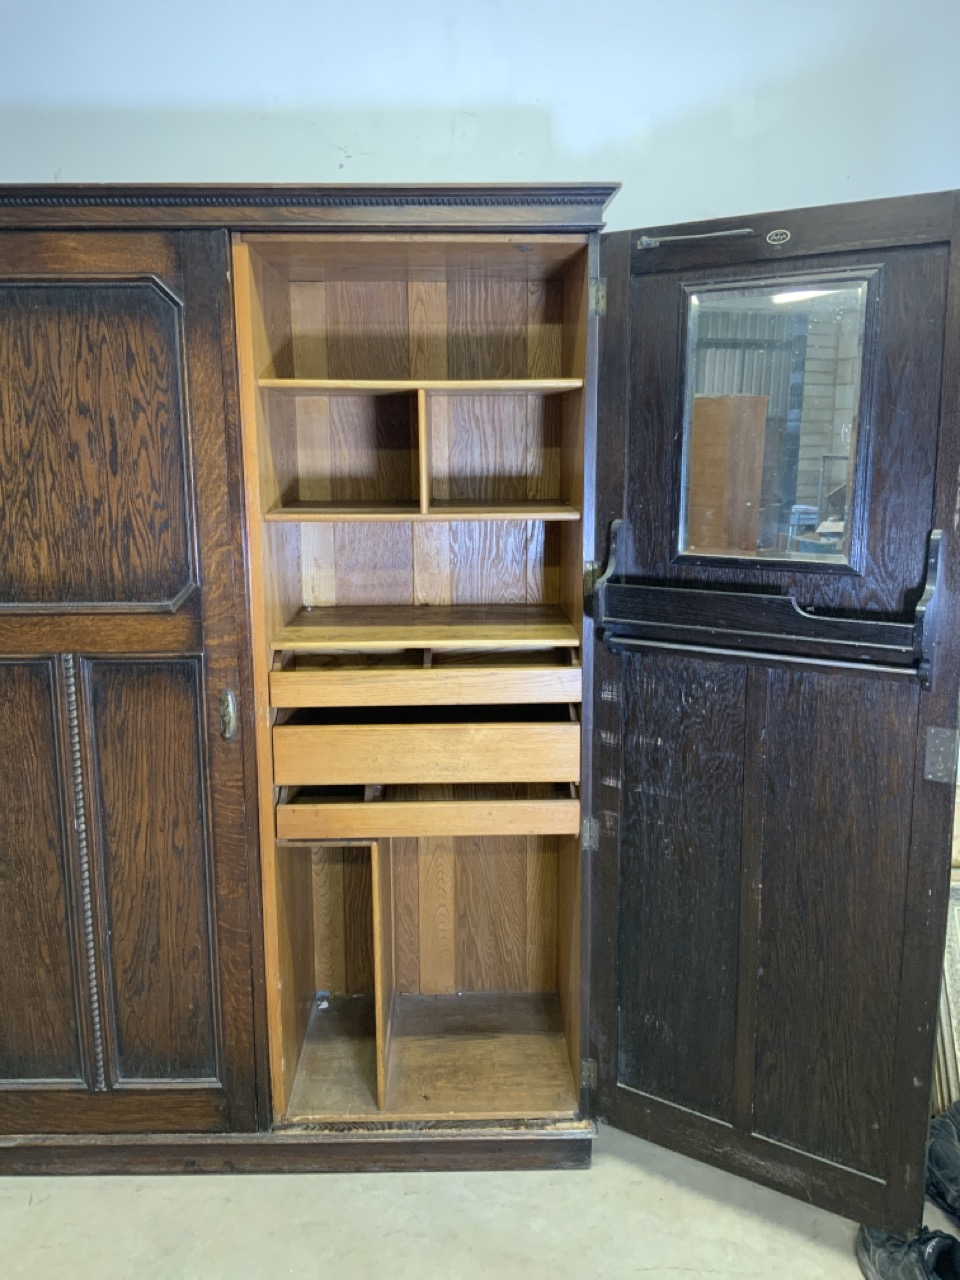 An early 20th century gentleman's oak double wardrobe by Awlyn furniture with fitted shelves, - Image 2 of 10